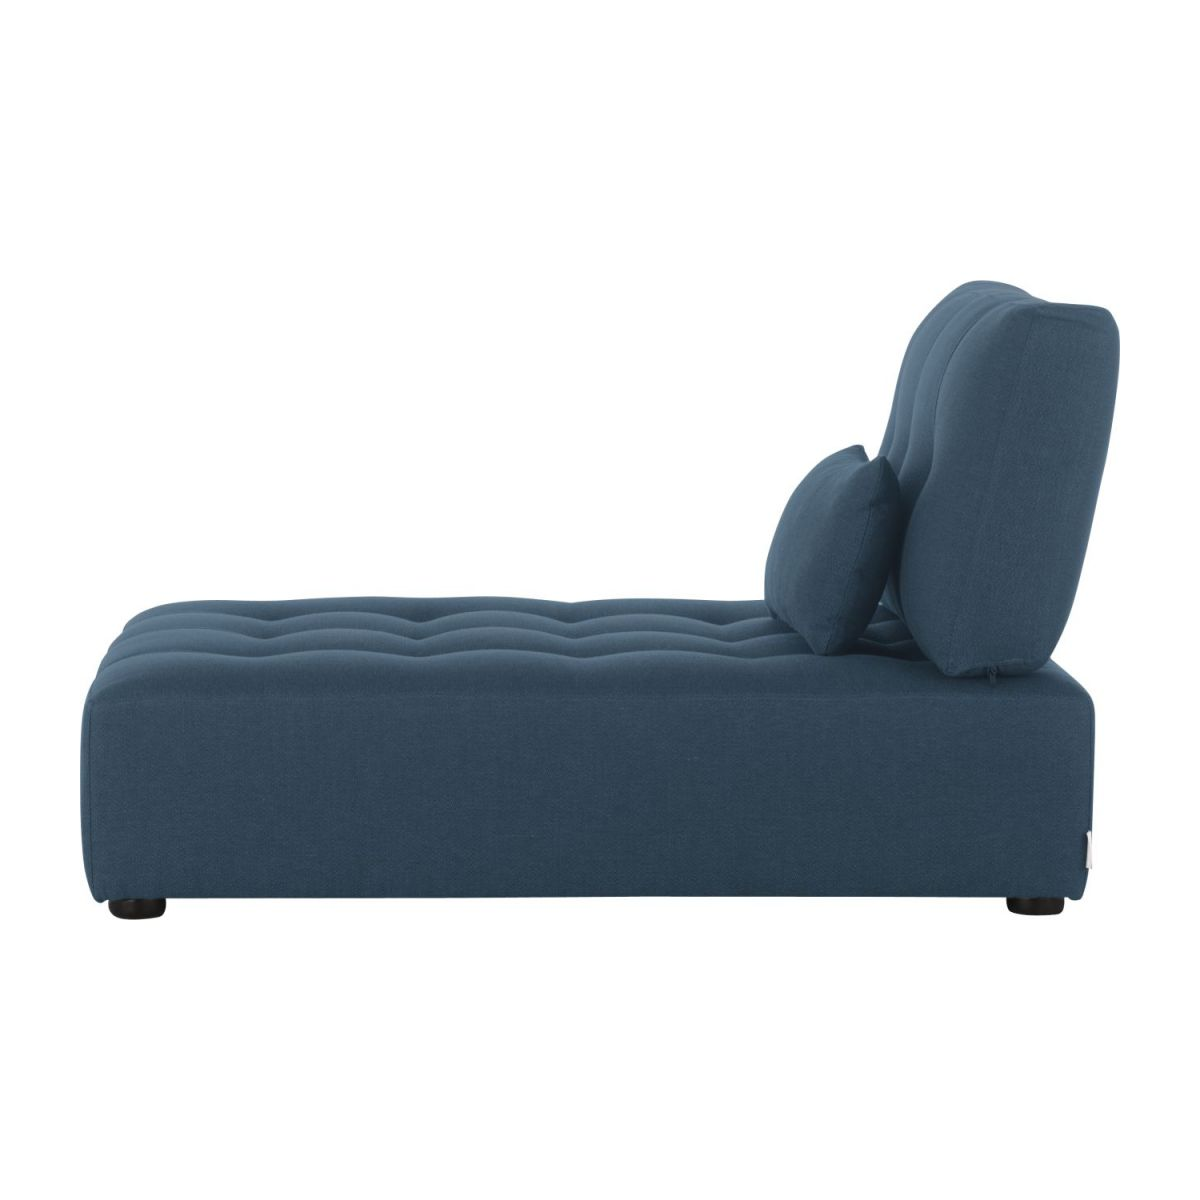 Chaiselongue de tela-azul n°4